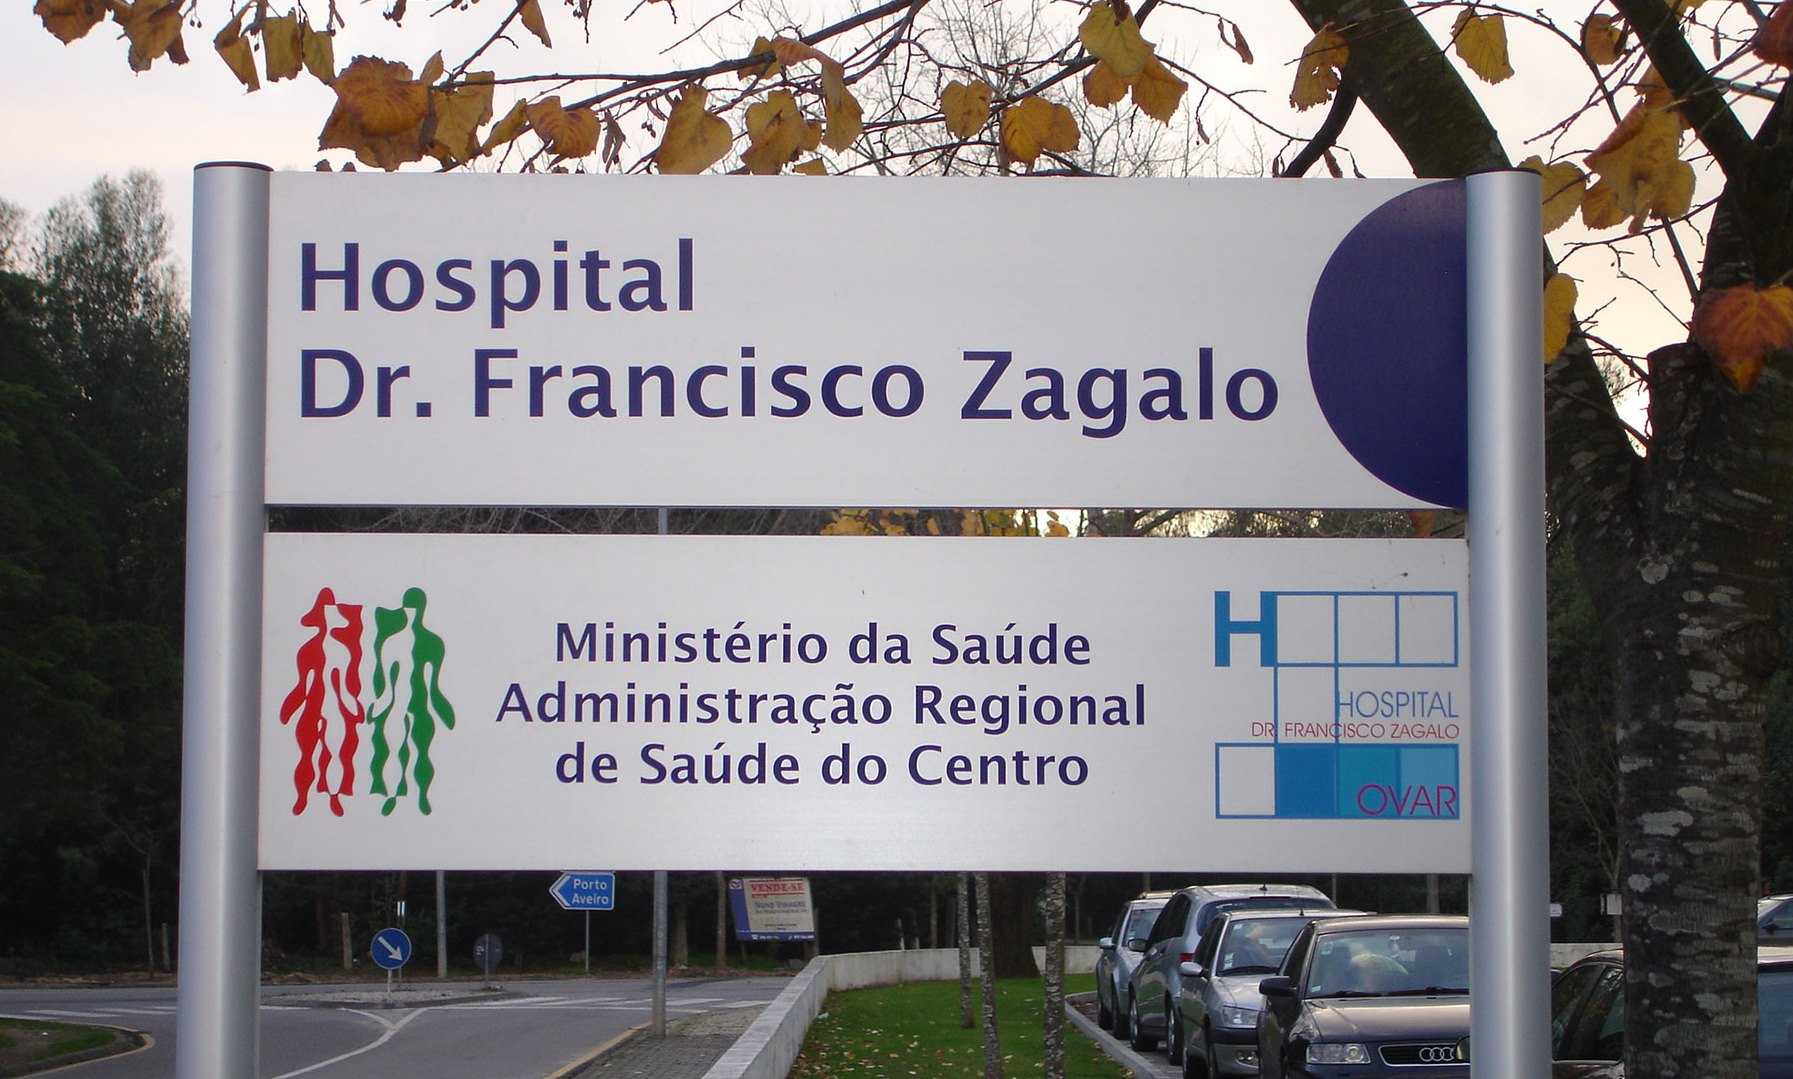 Telecomputer Hospital Francisco Zagalo